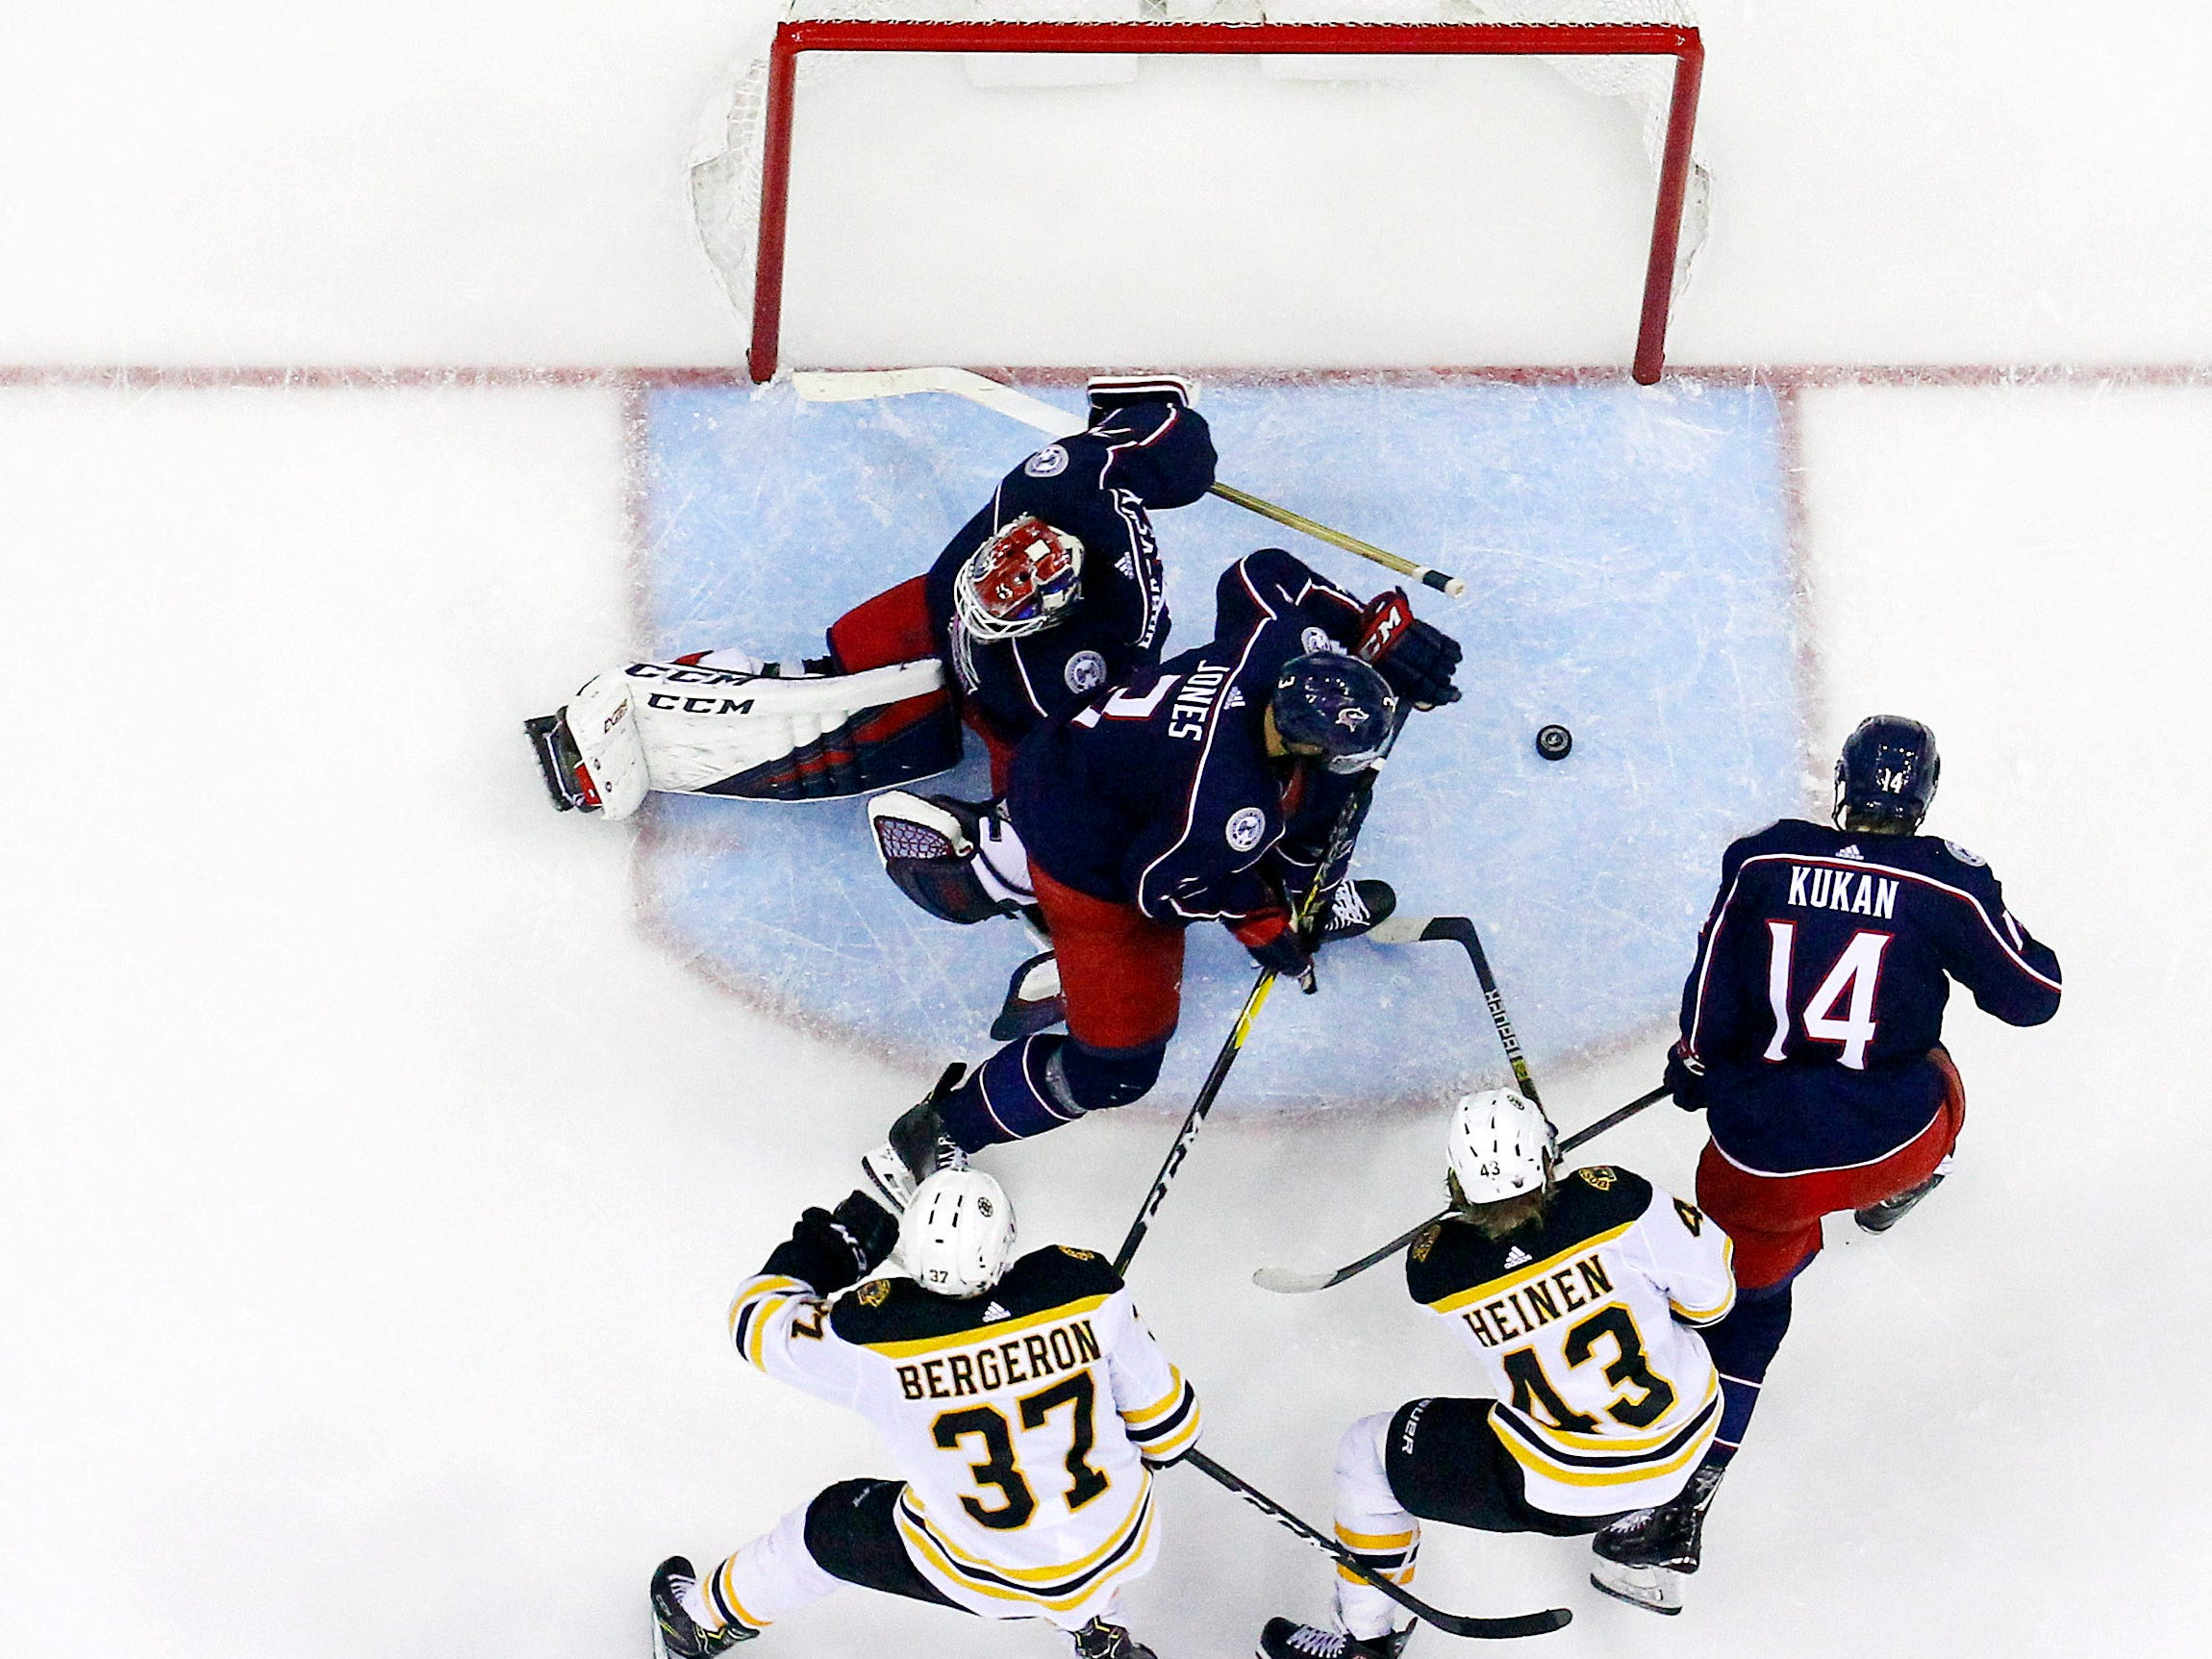 Second round: Blue Jackets goalie Sergei Bobrovsky makes a save against the Bruins in the second period of Game 3.